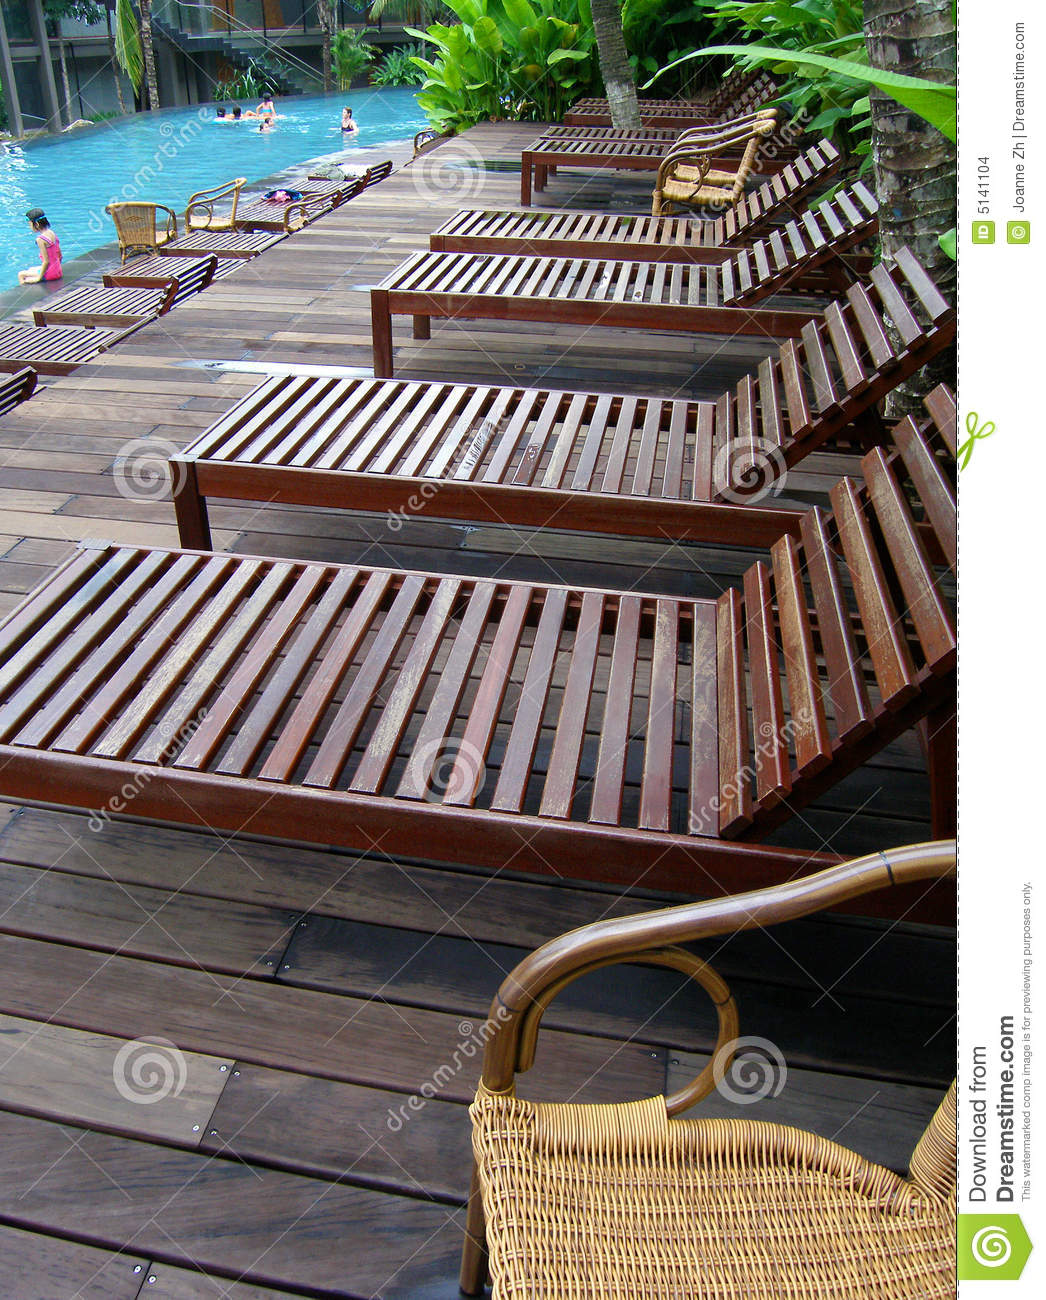 Pool Deck Chairs Poolside Deck Chairs Loungers Stock Images Image 5141104